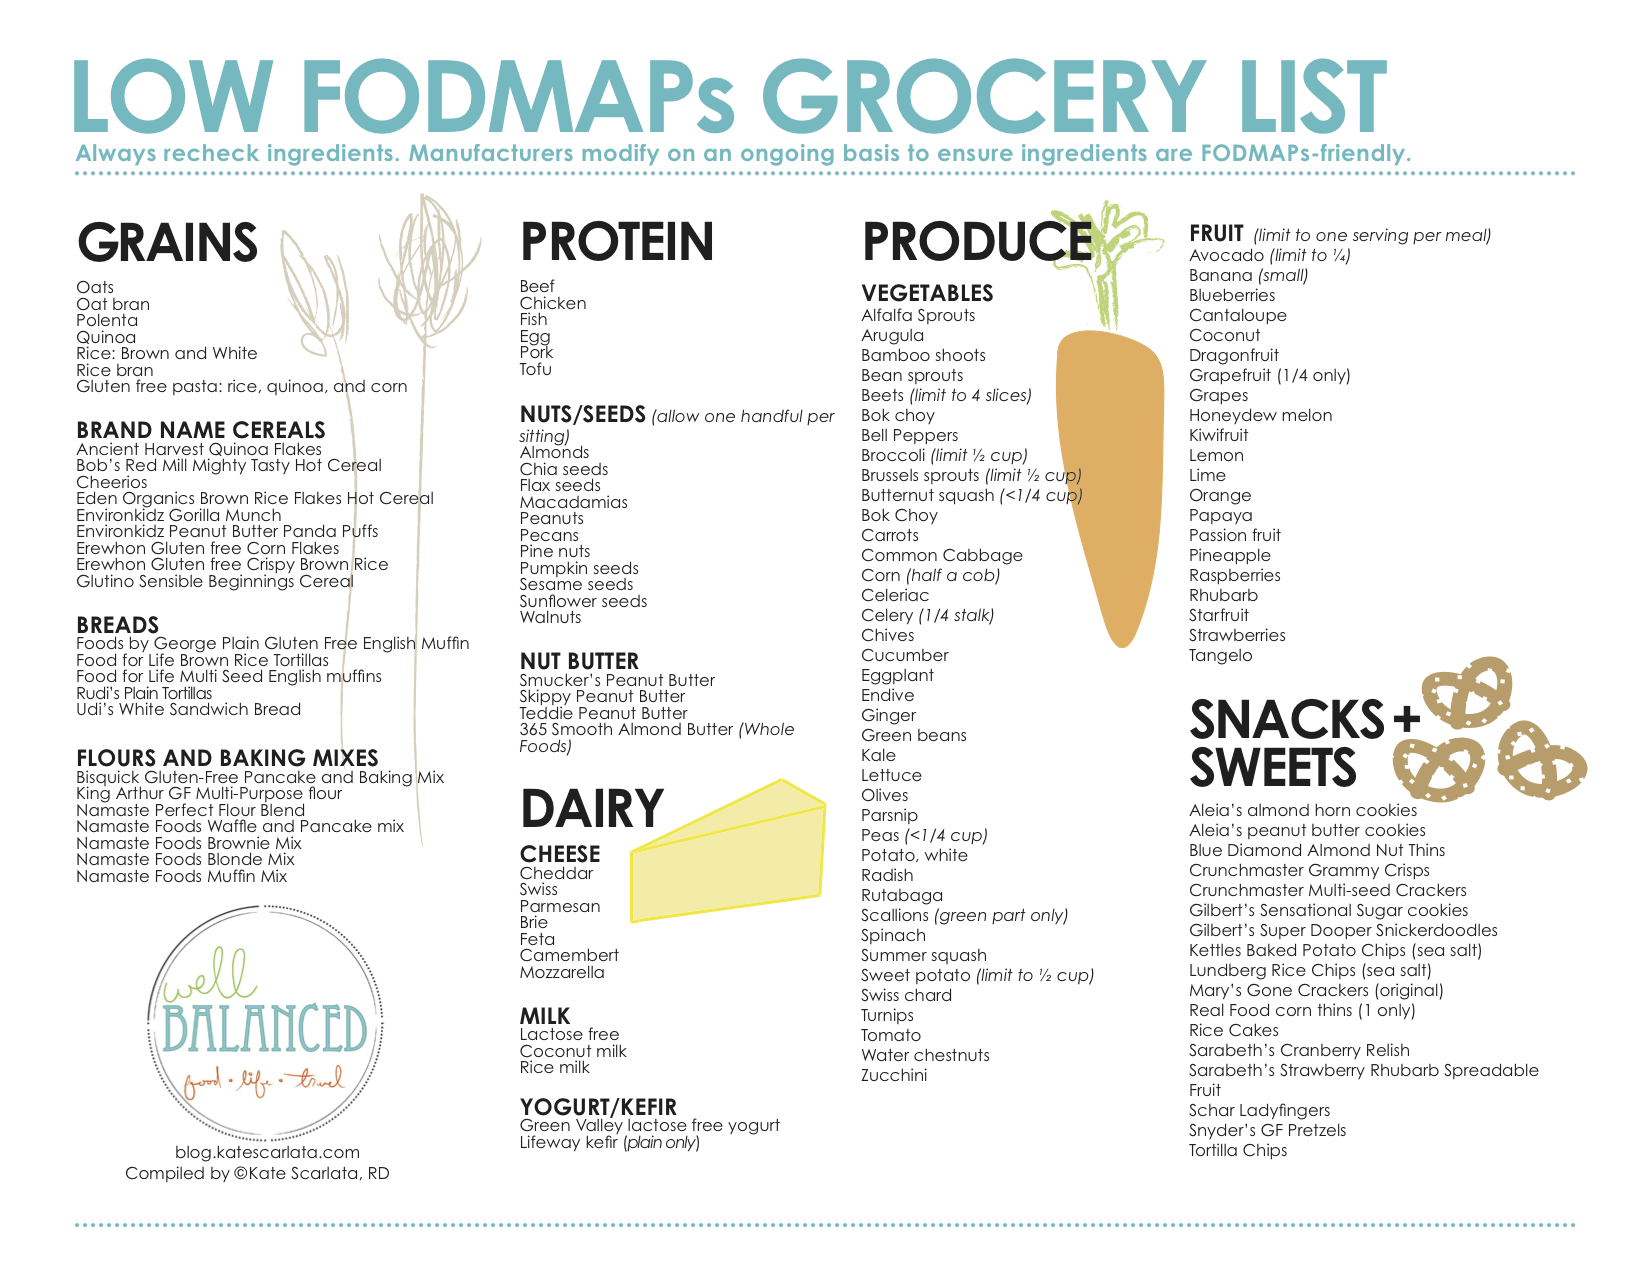 How To Live With Ibs As A College Student Low Fodmap Diet